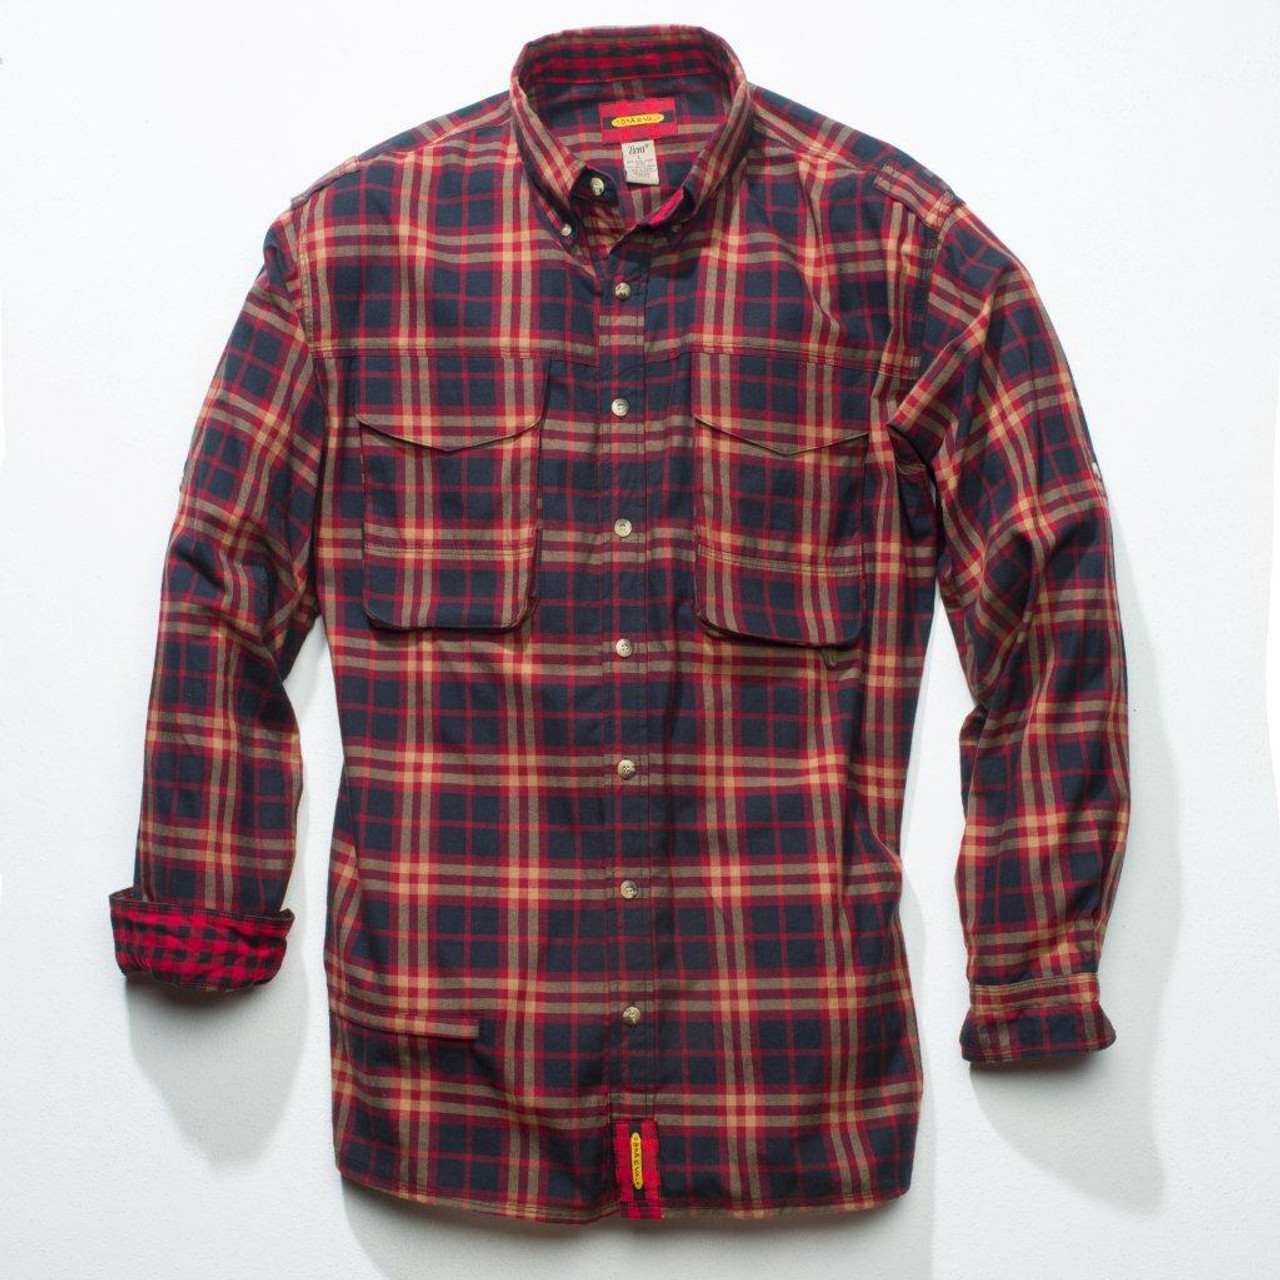 Exventurer - Black & Tan Crimson Estate Plaid